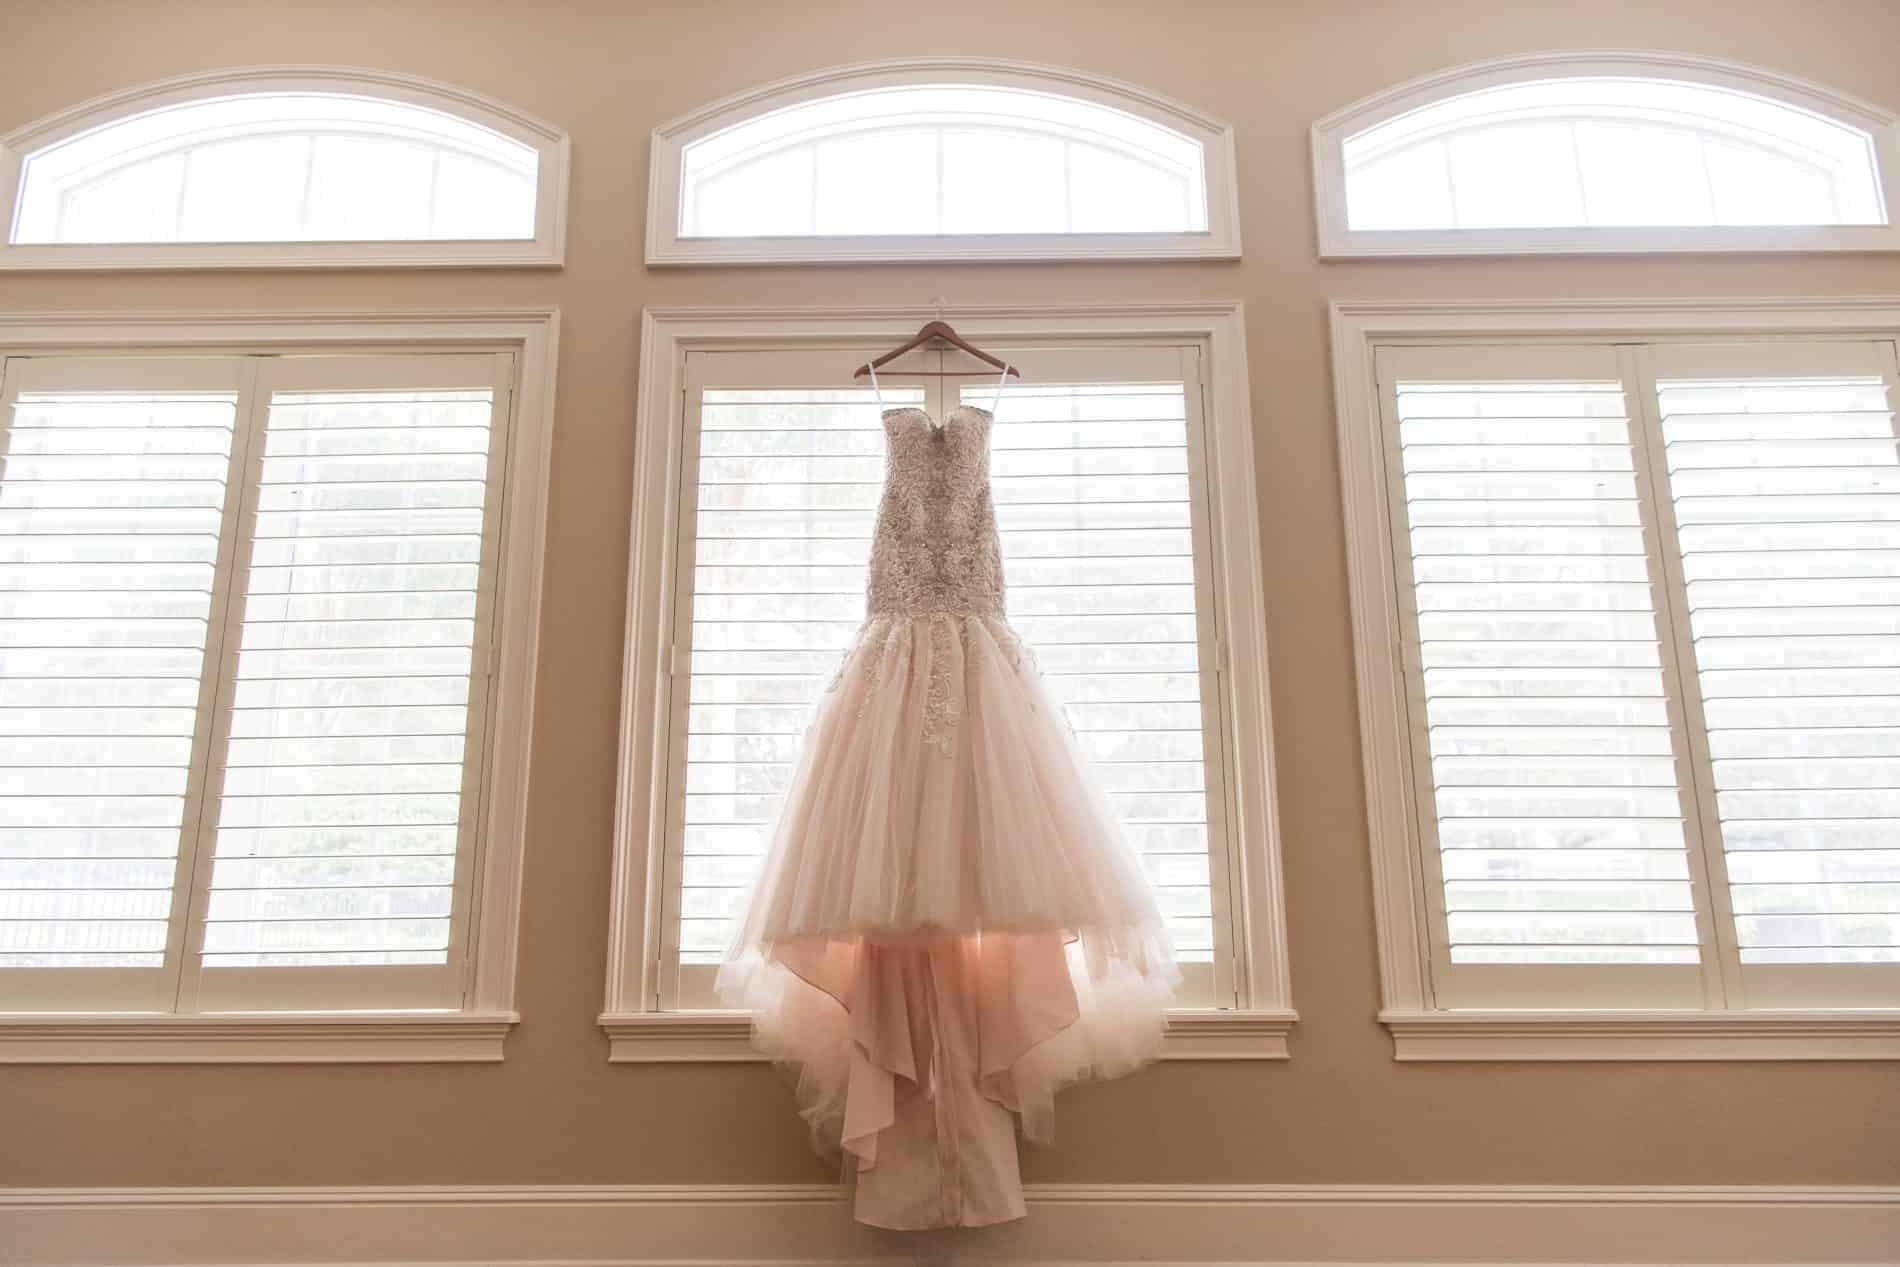 Beautiful Wedding Dress waiting for the bride